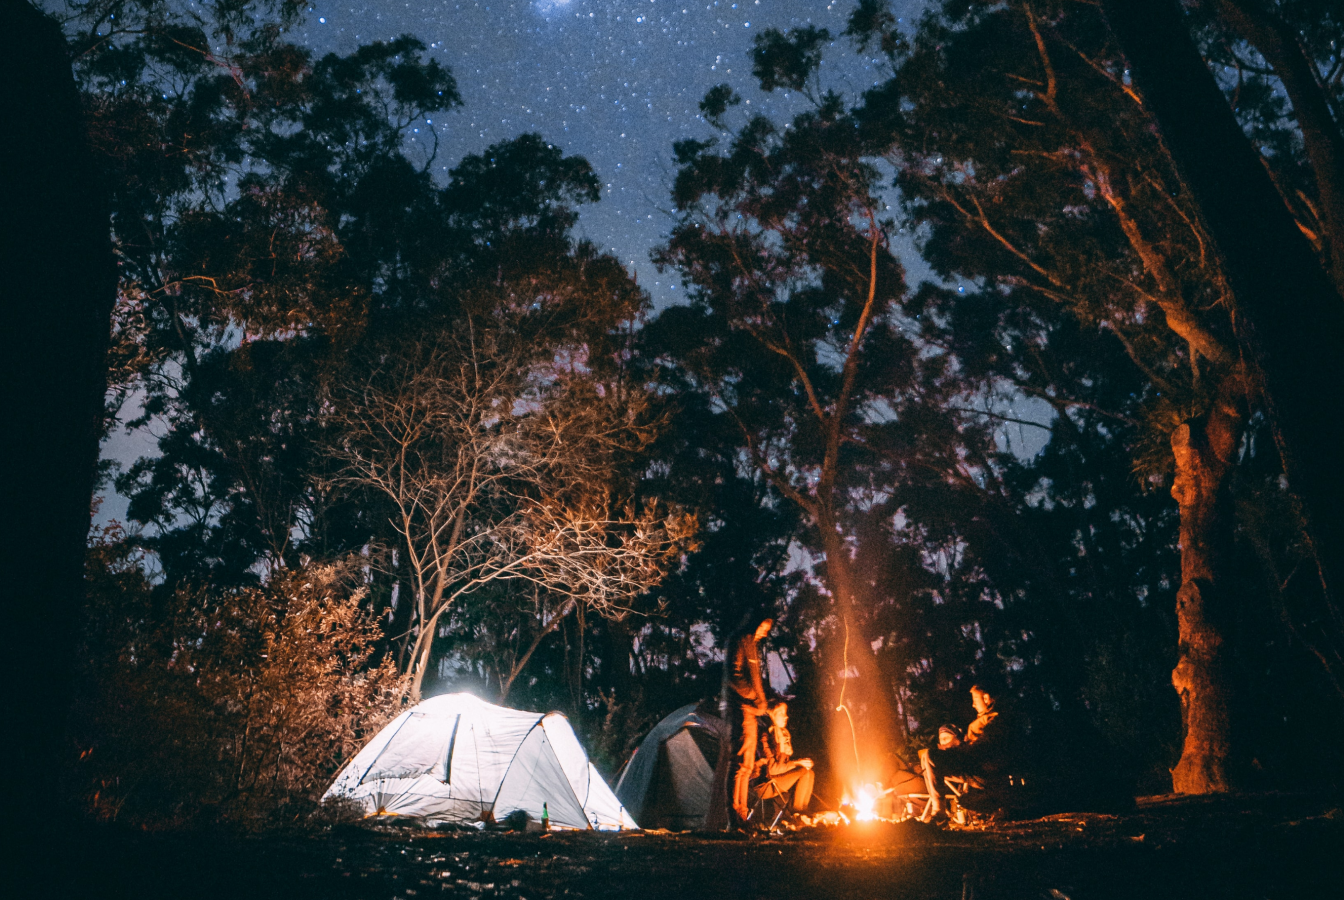 Four campers around a fire a night with a tent